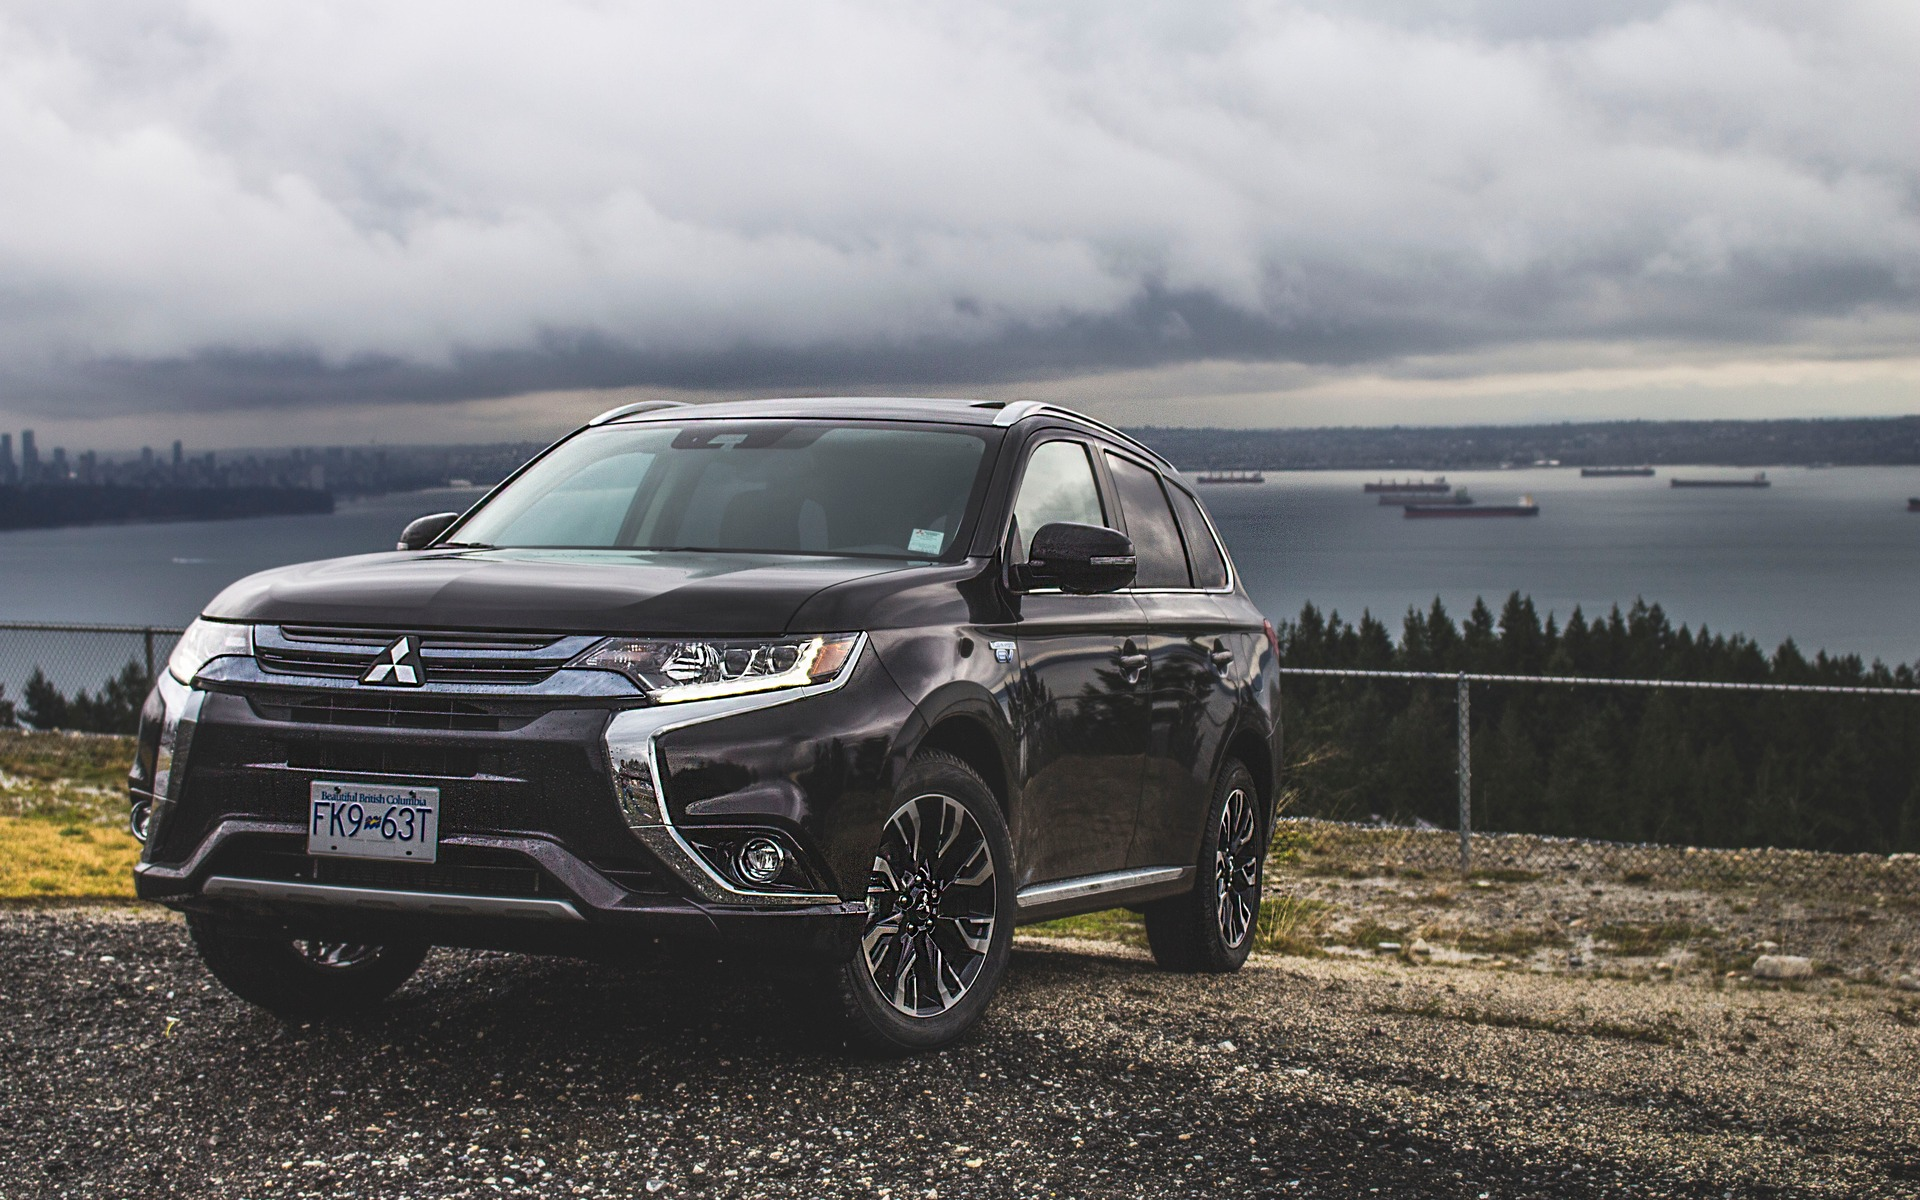 mitsubishi outlander phev 2018 il est temps de prendre de l avance guide auto. Black Bedroom Furniture Sets. Home Design Ideas